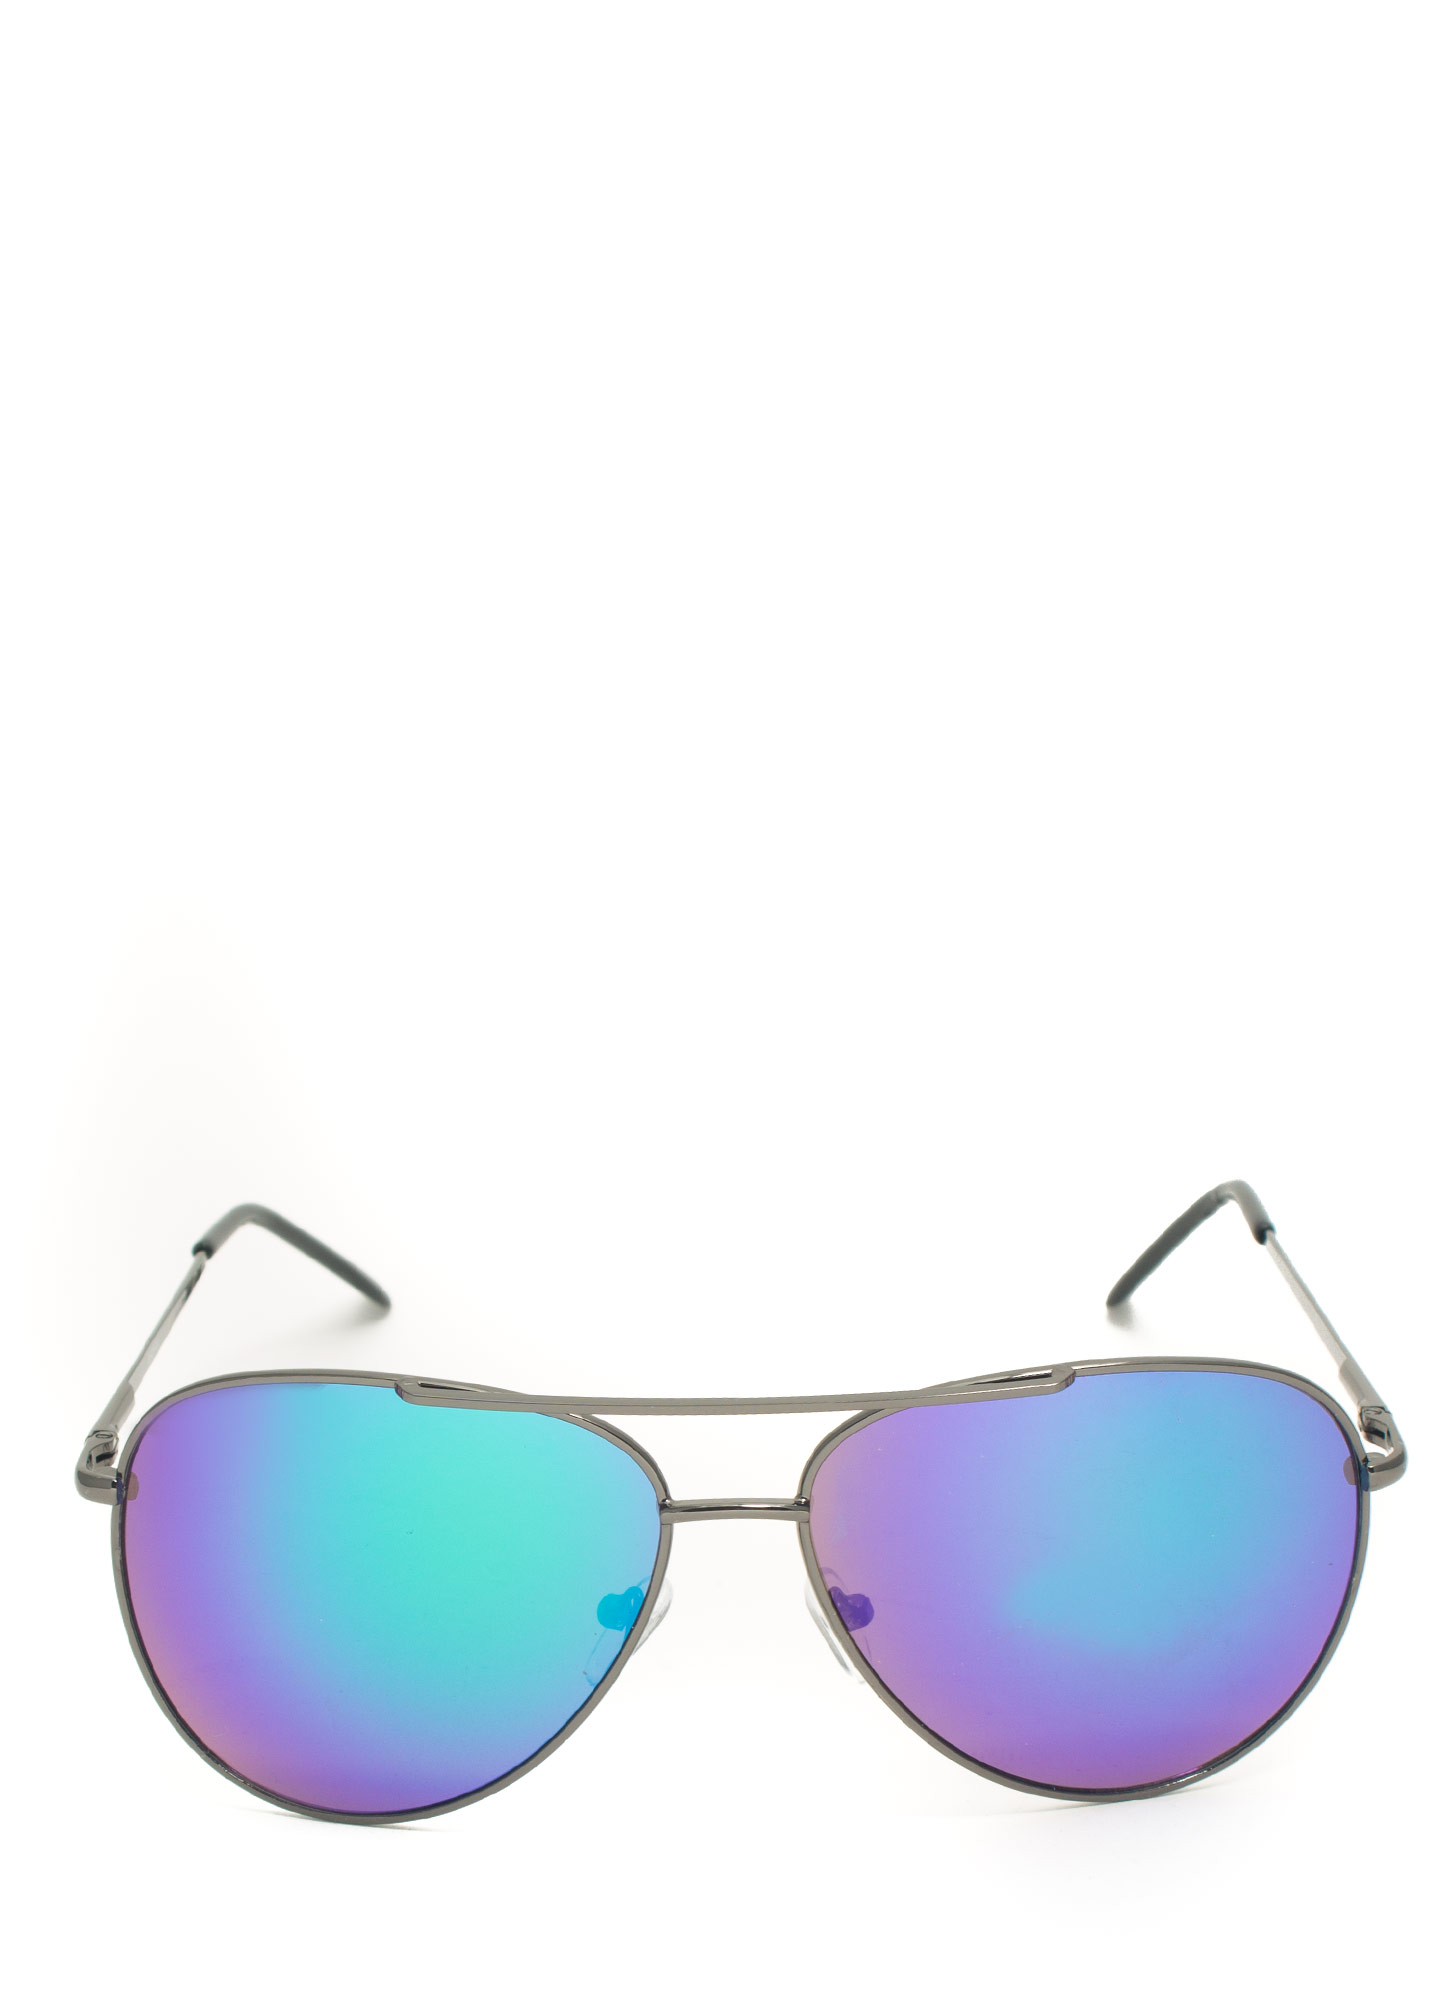 Reflecting Pool Aviator Sunglasses TEALBLACK